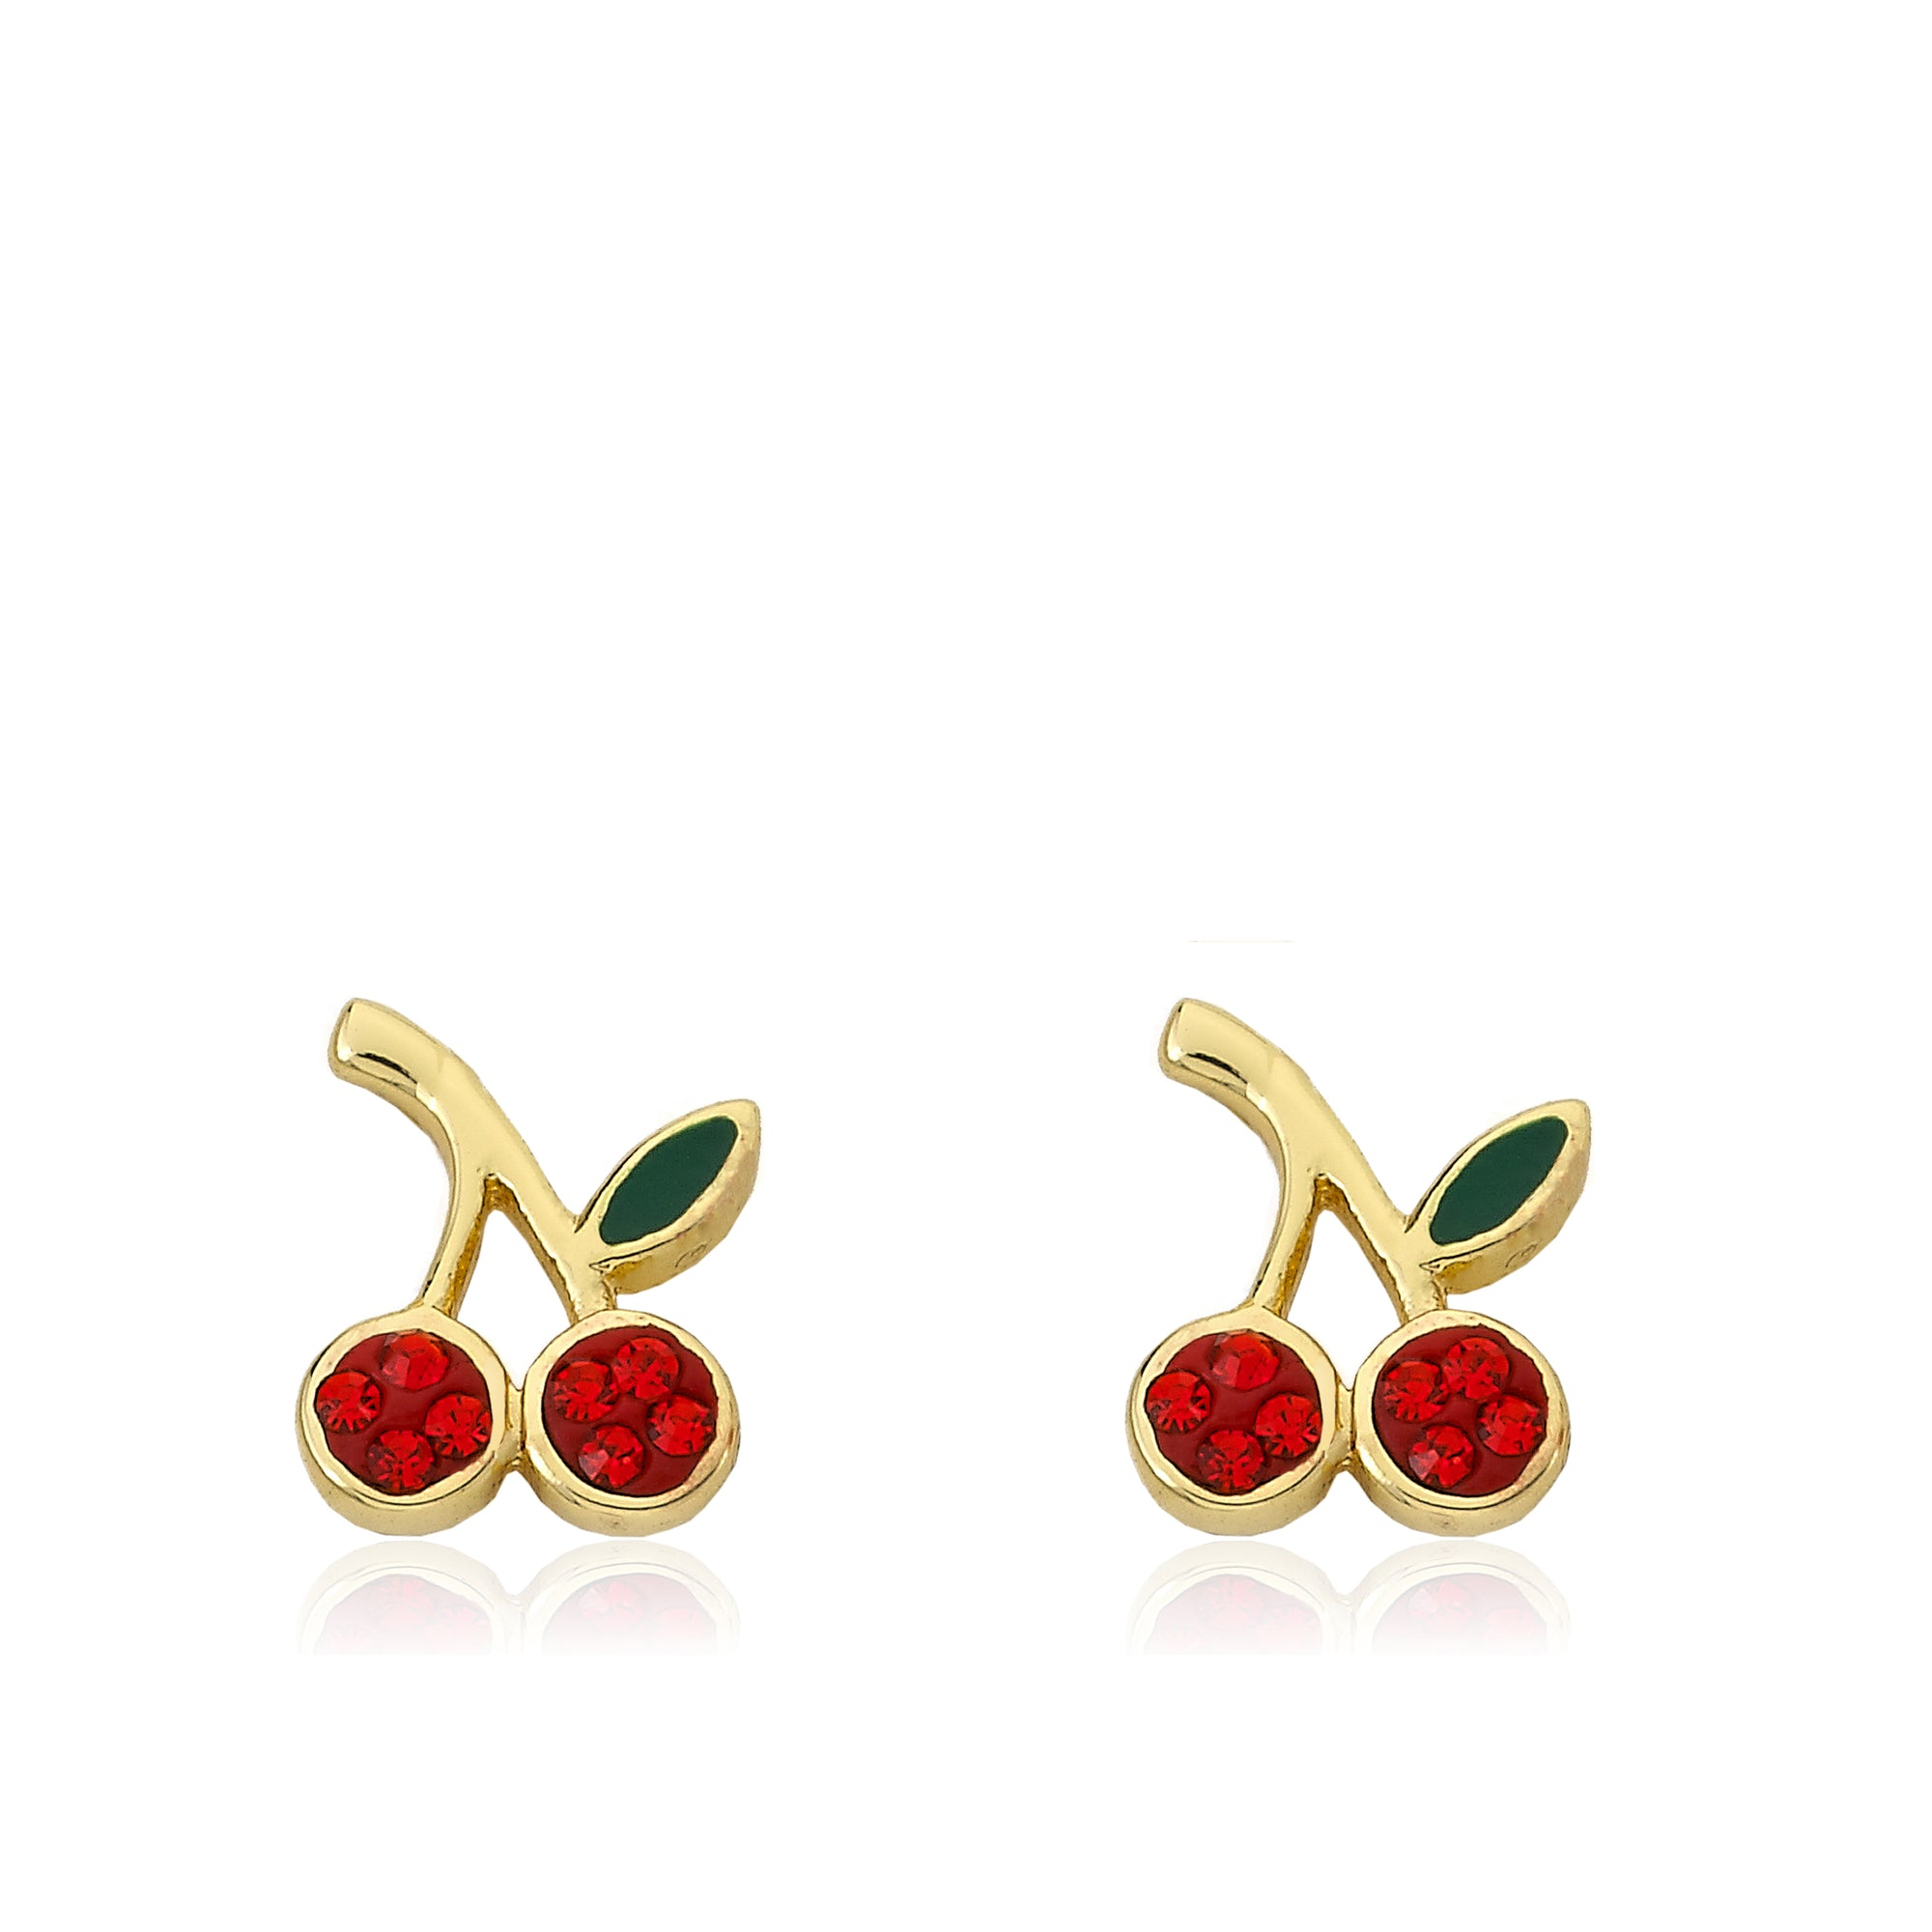 Twin Star CHERRY DELIGHT Cherry Stud Earrings